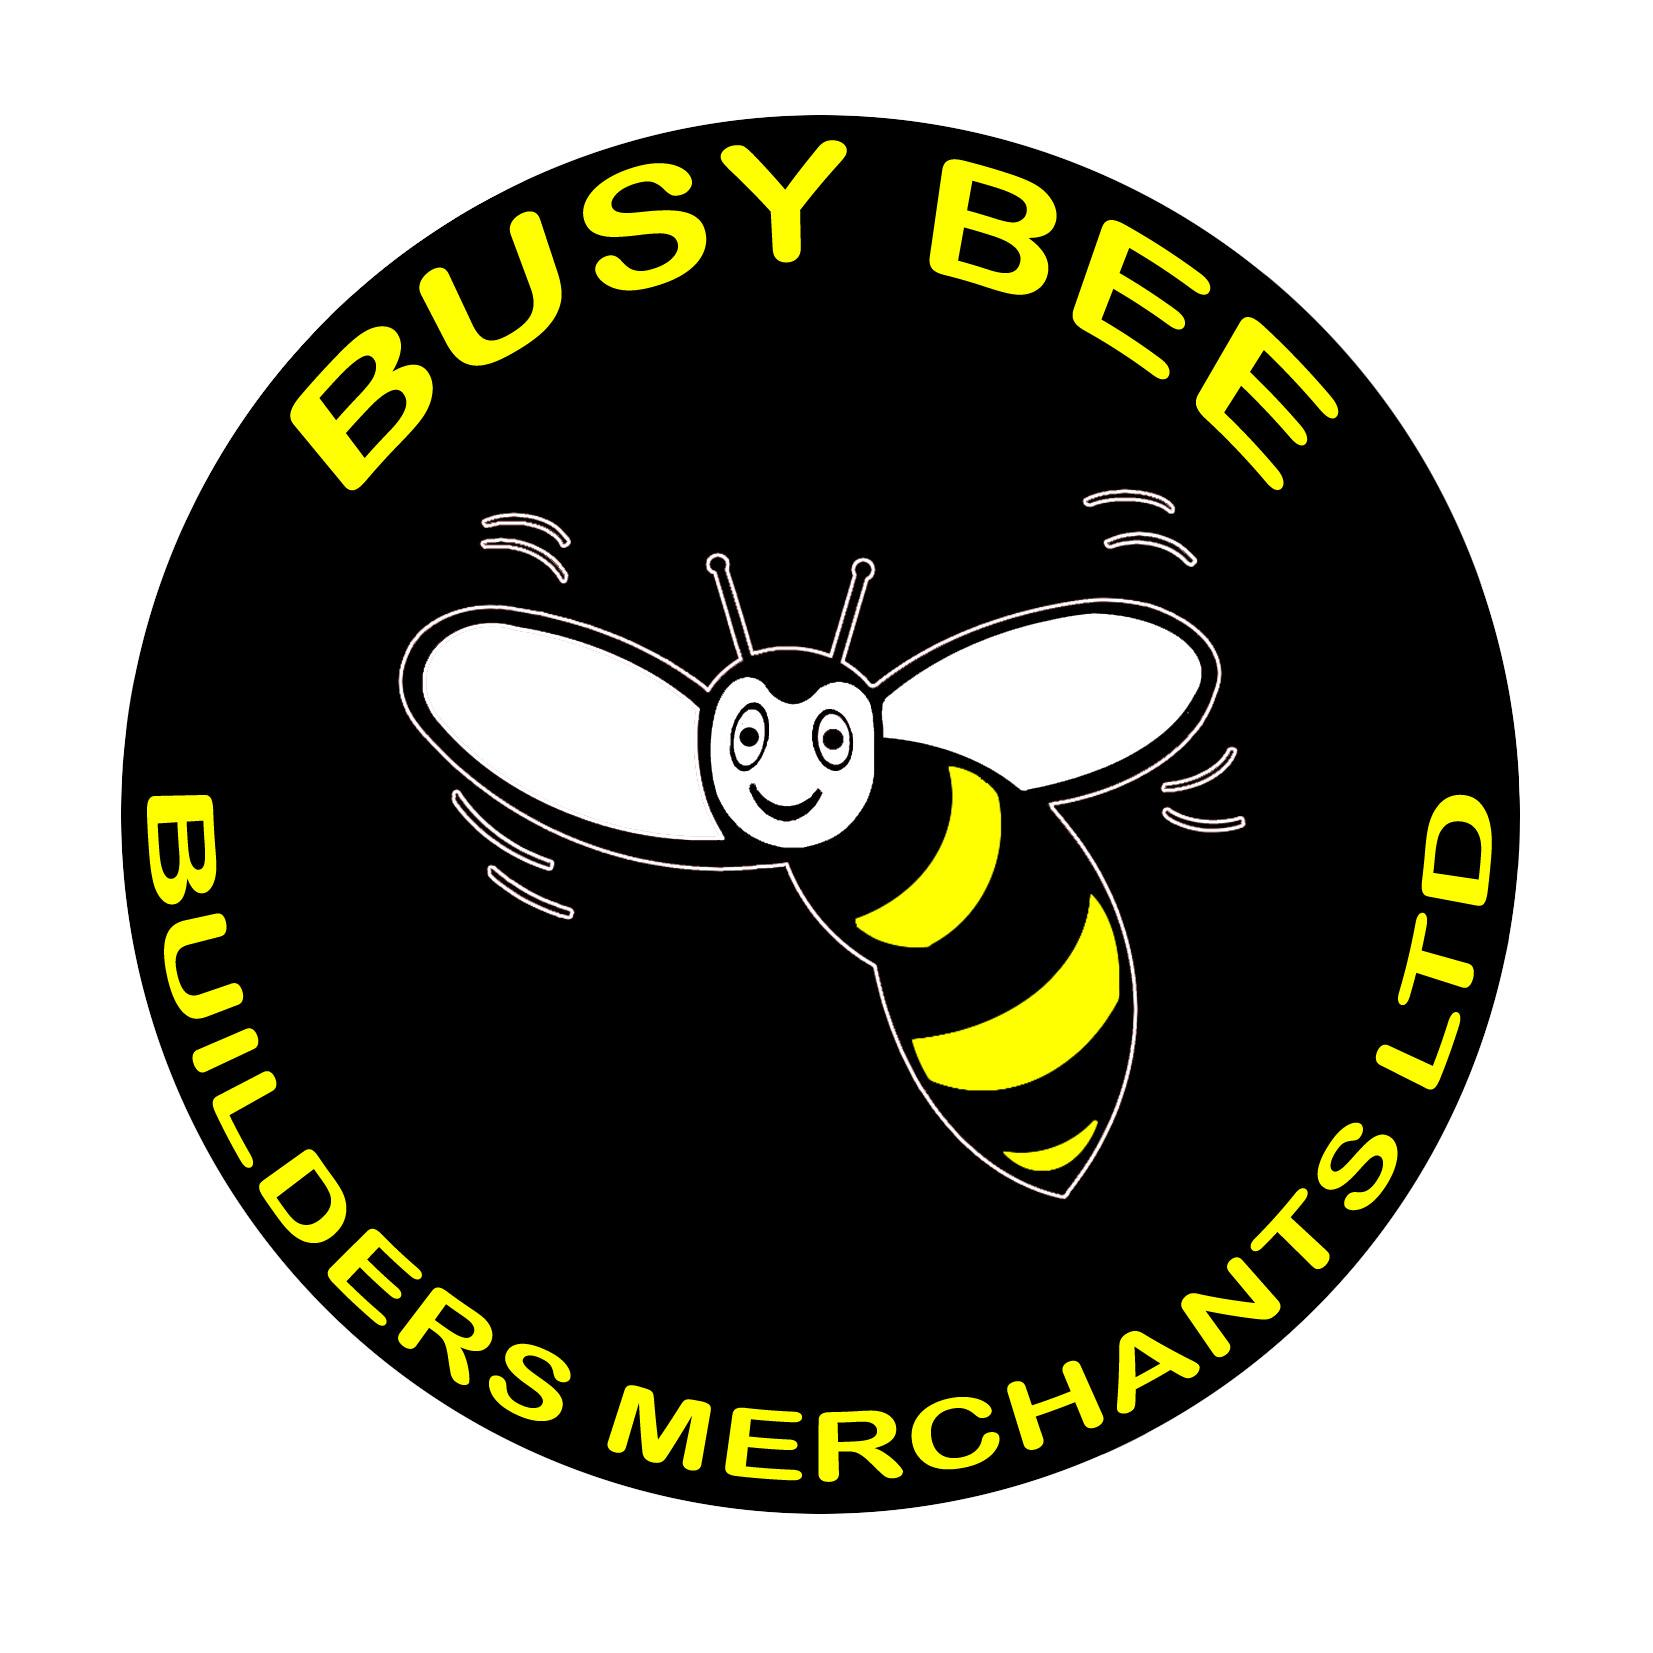 Busybee Builders Merchants Ltd logo